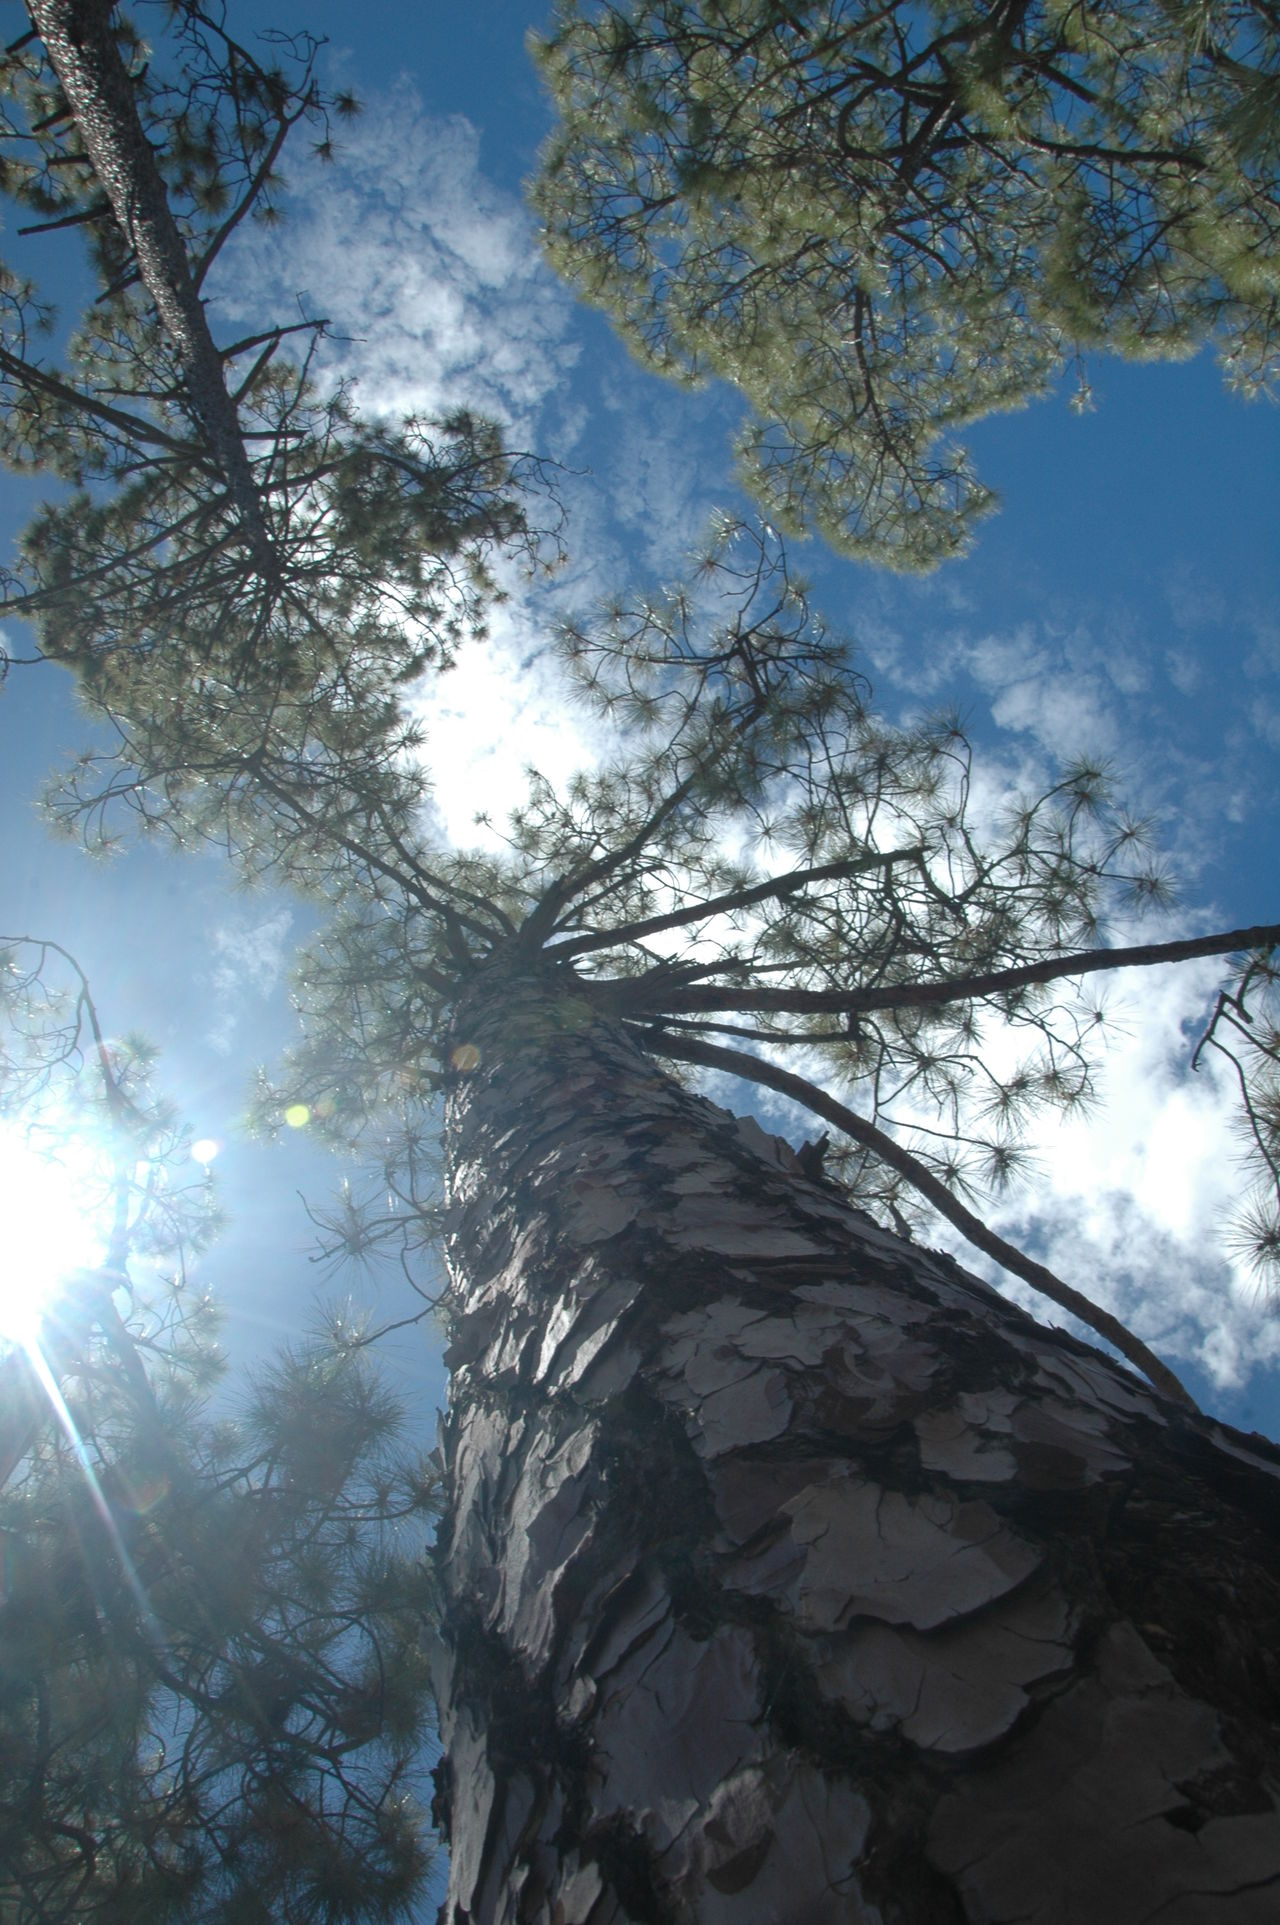 Beauty In Nature Blue Branch Canarias Canary Canary Islands Cho Tenerife Day Growth Low Angle View Mountain Nature Nature No People Outdoors Parque Nacional Del Teide Sky Sunbeam Sunlight Teide Teide Volcano Tenerife Tranquility Tree Vulcan